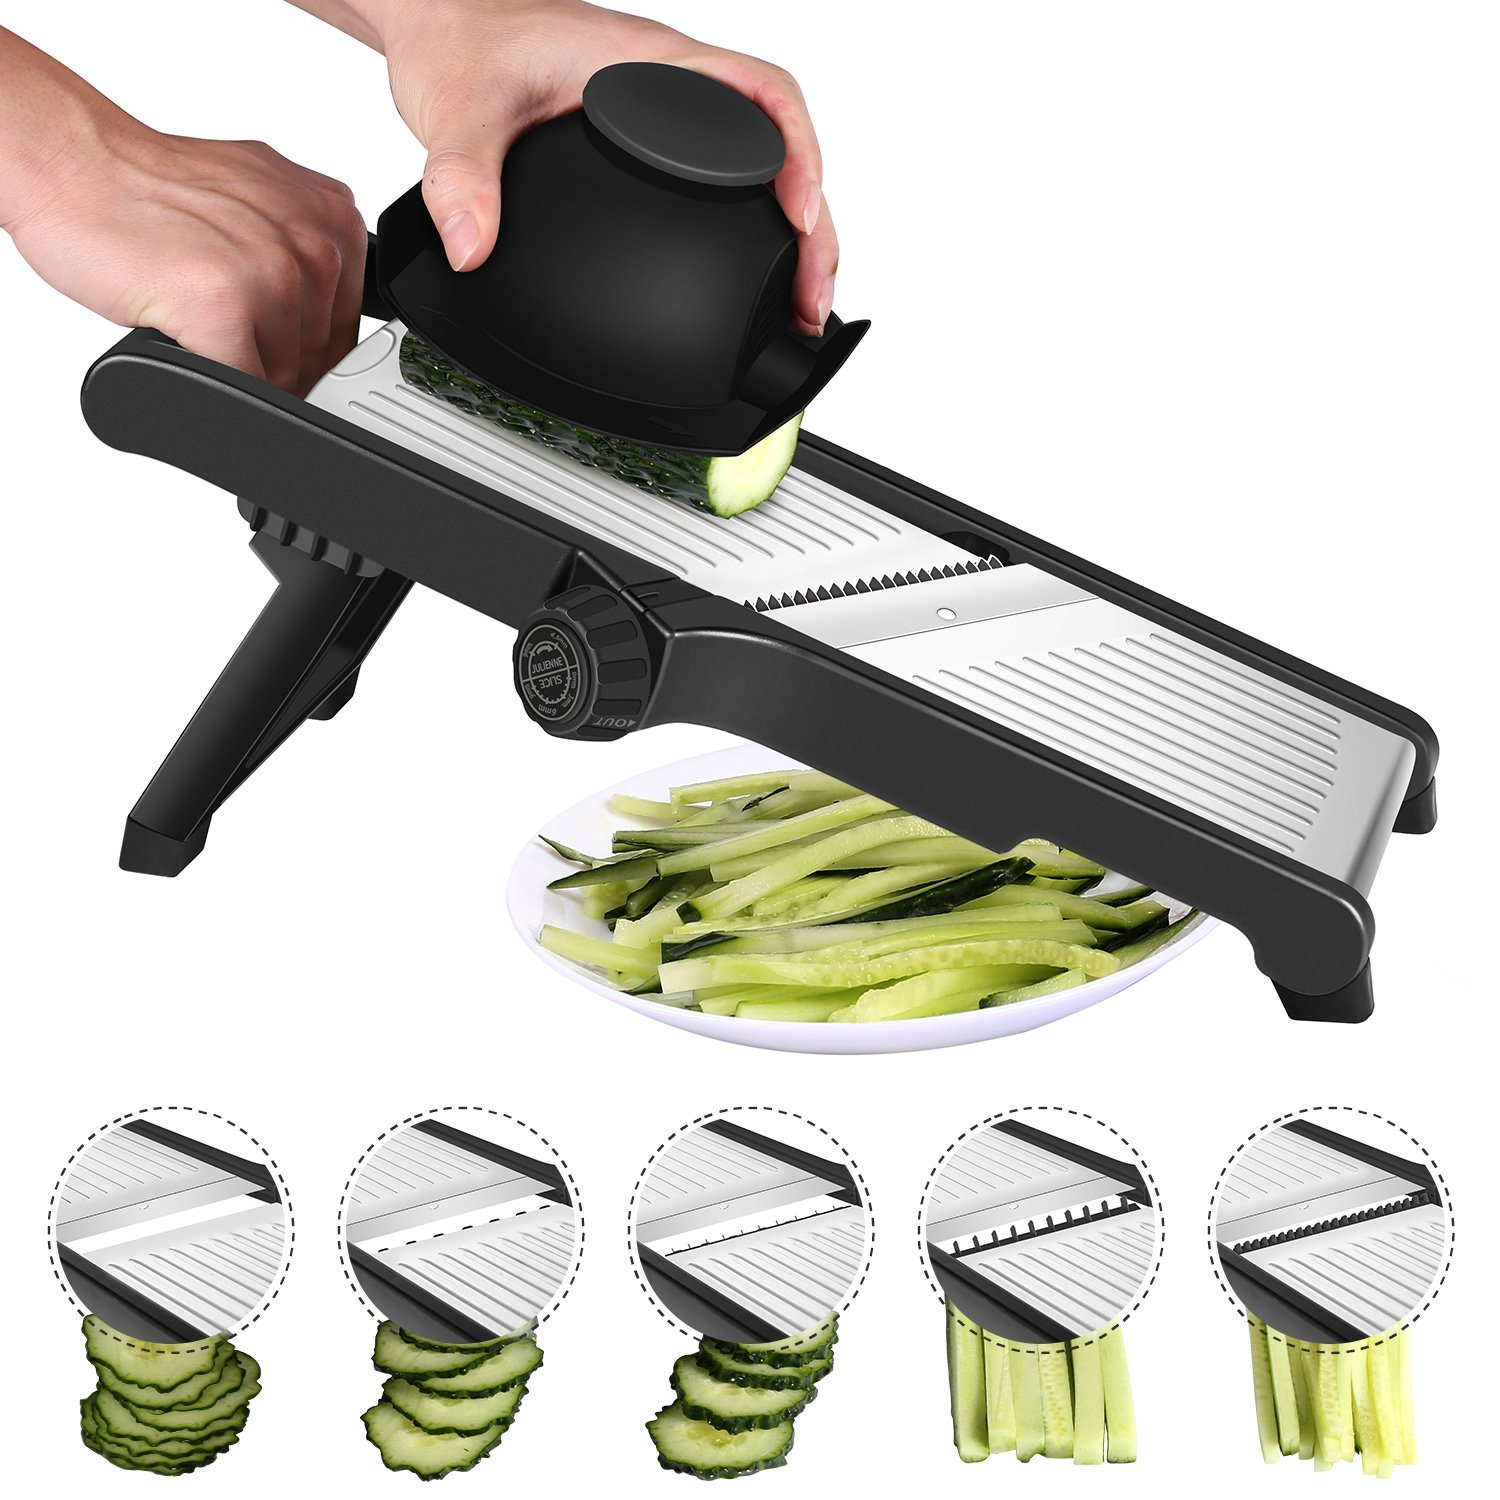 CaCaCook Stainless Steel Mandoline Slicer Adjustable Kitchen Food Mandolin Vegetable Julienne Slicer For Fruits And Vegetables From Paper-Thin To 6mm With 6 Stainless Steel Blades By Cacook - Black by CaCaCook